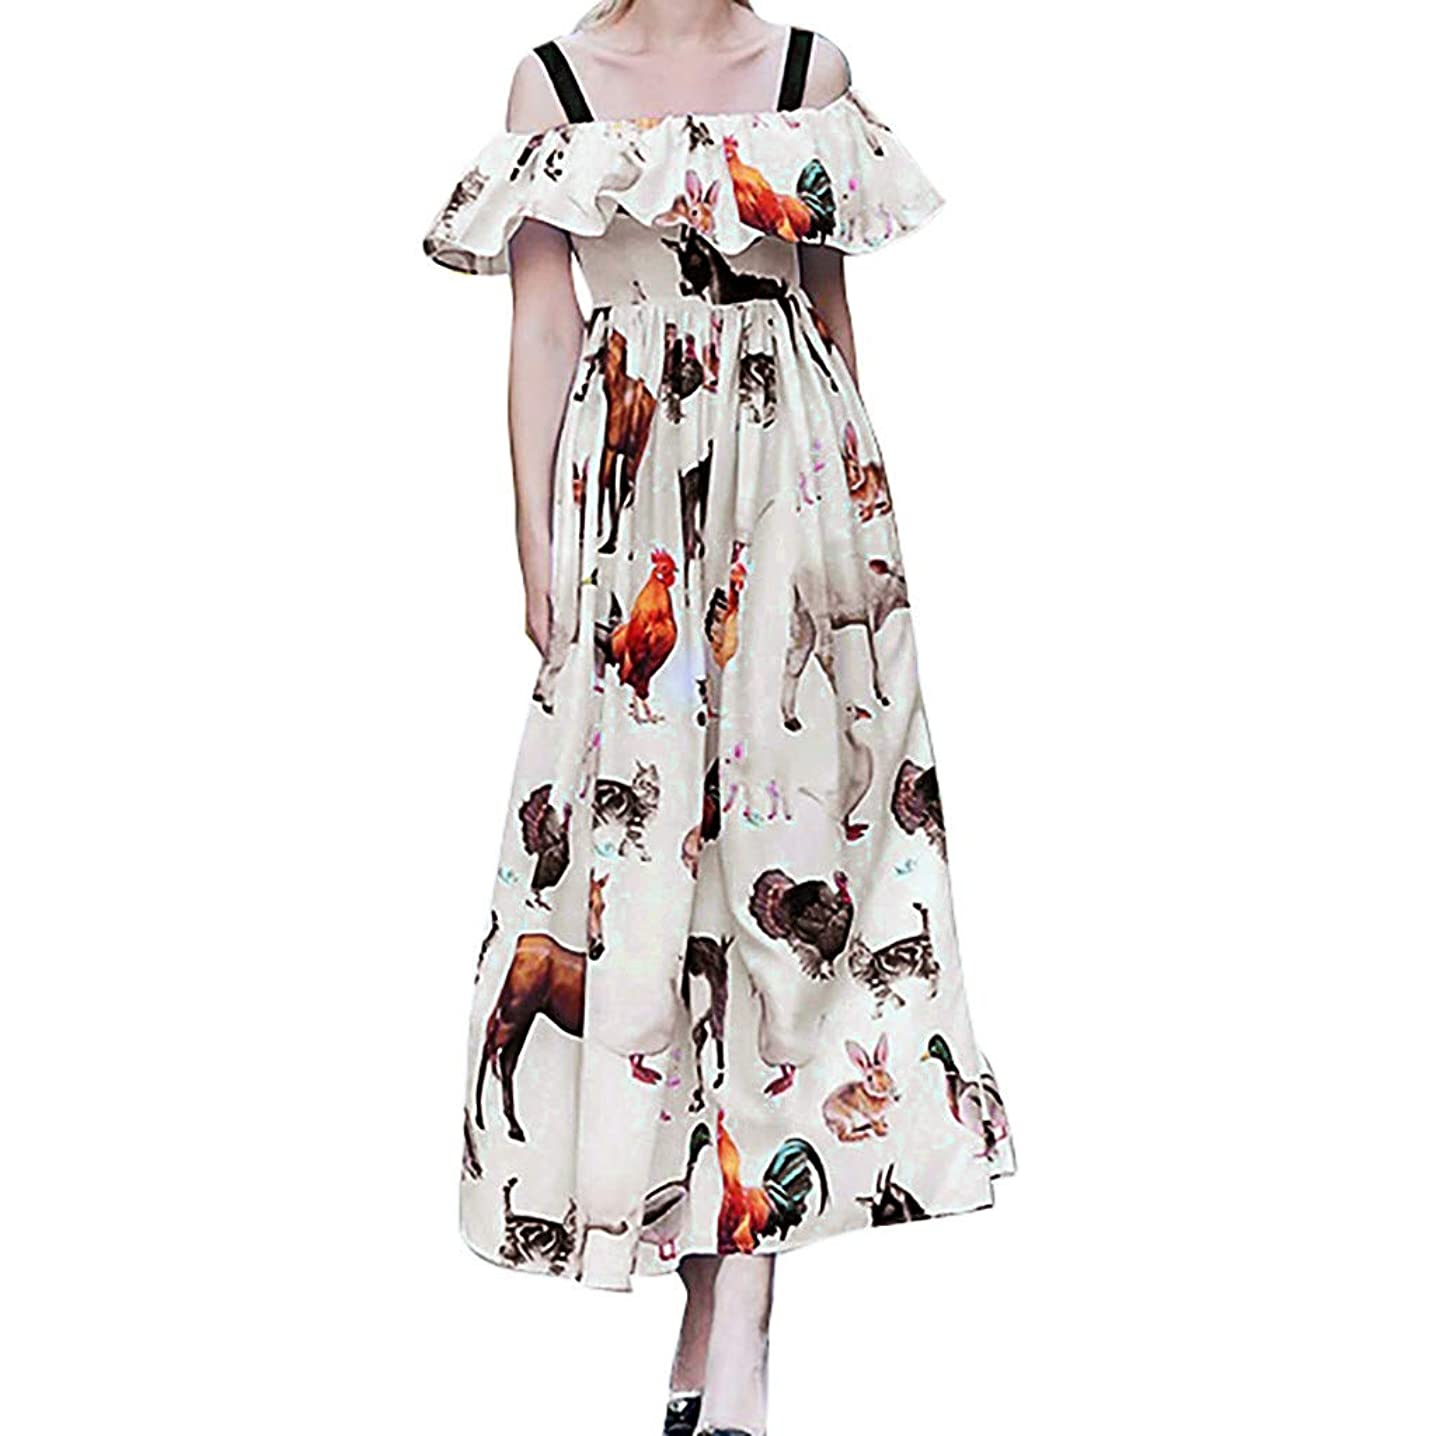 Kawaiine Women Sexy Off Shoulder Sling Patterned Printed Backless Ruffles Party Dress